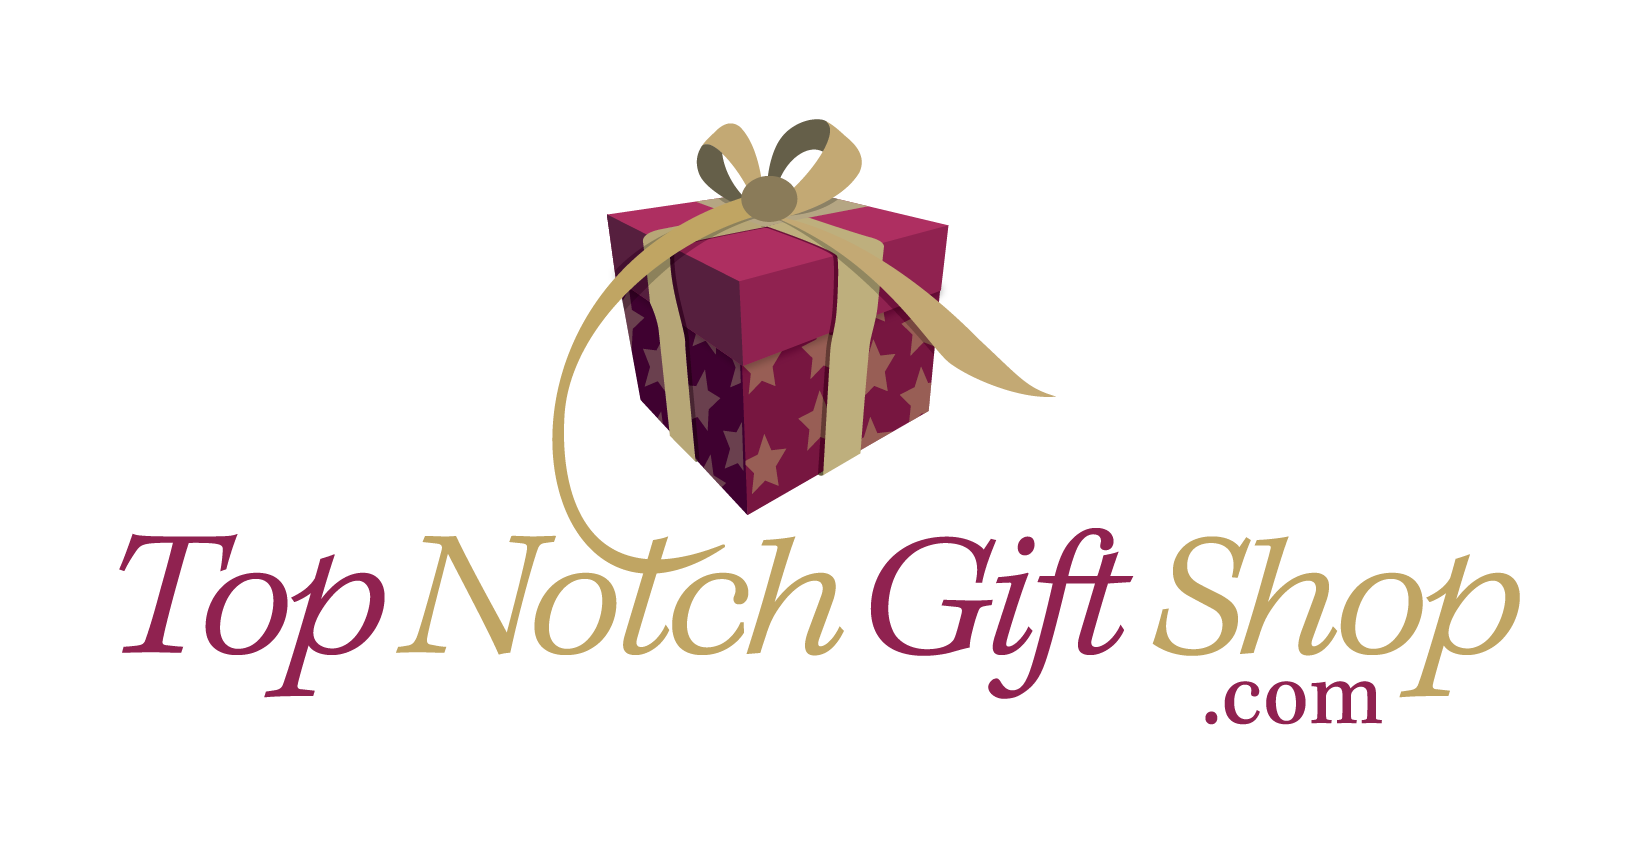 Top Notch Gift Shop Logo